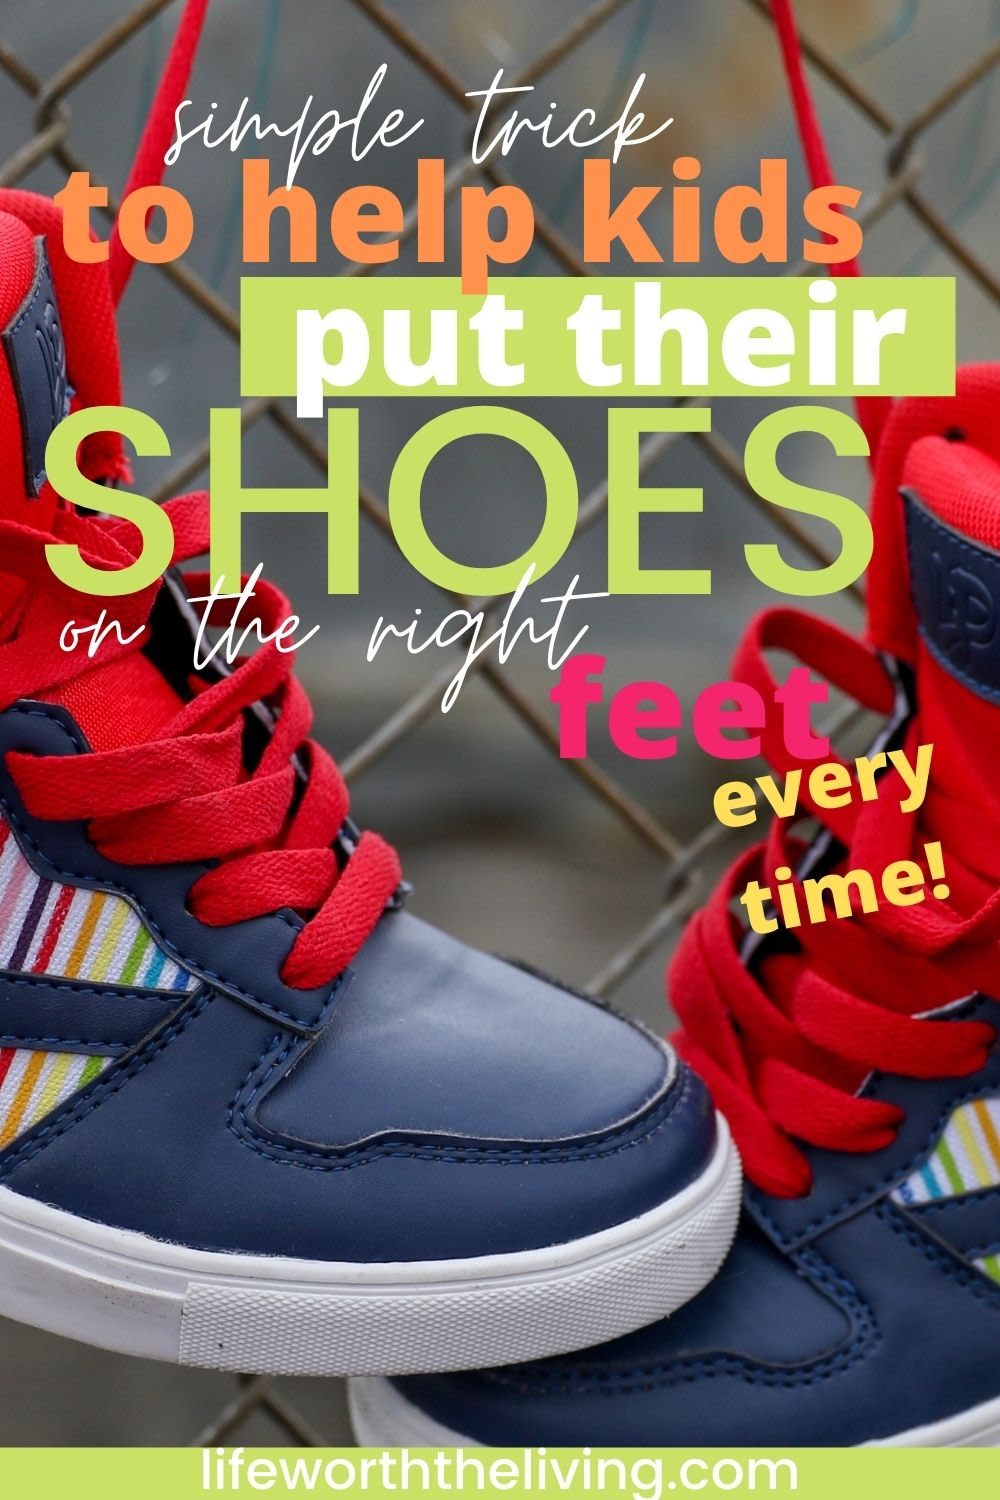 this is a pinterest pin for a blog post on how to help kids put their shoes on the right feet every time